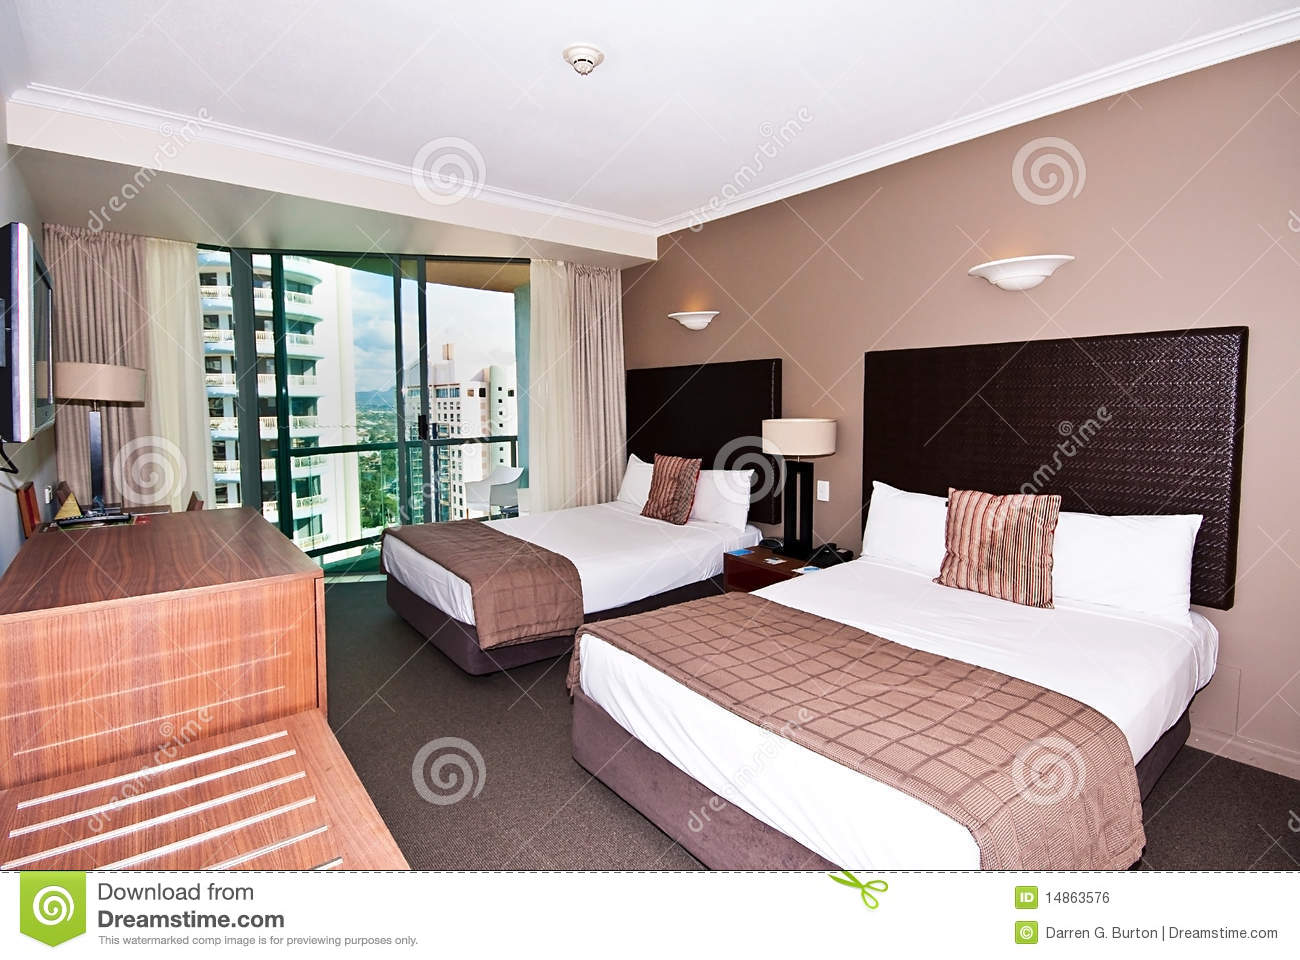 Twin double beds in a modern hotel room.